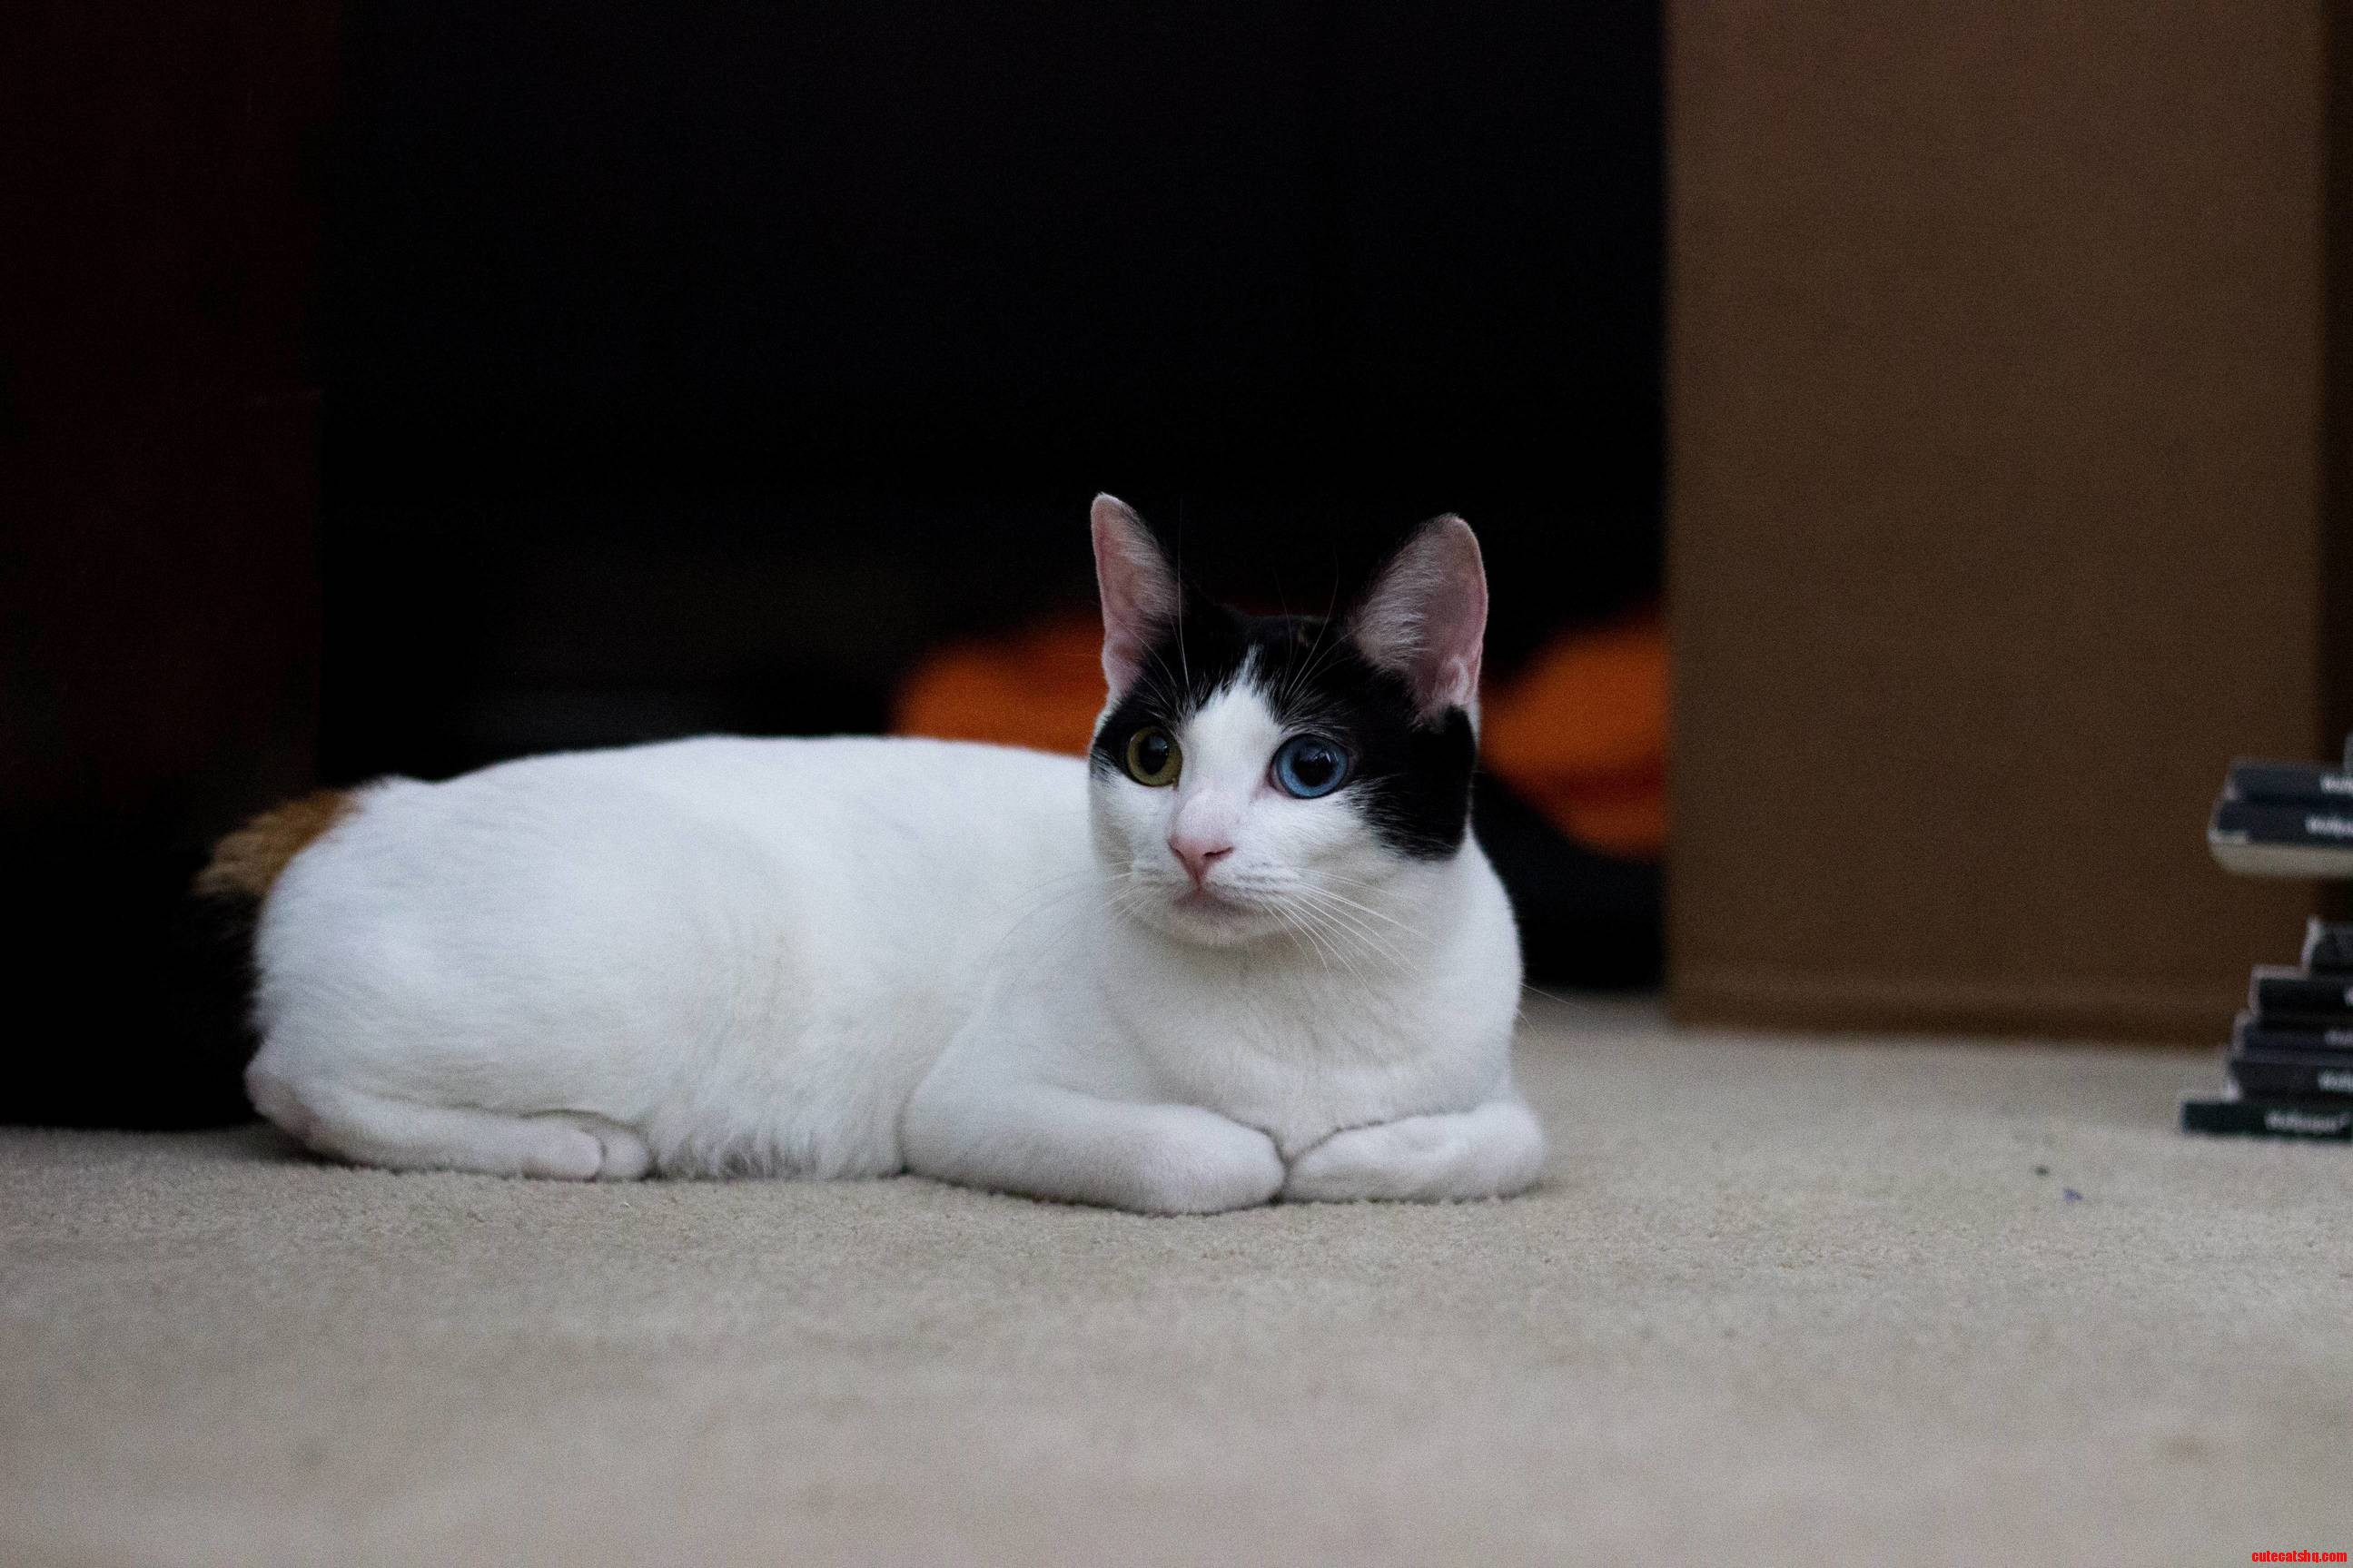 My friends japanese bobtail has different colored eyes ...